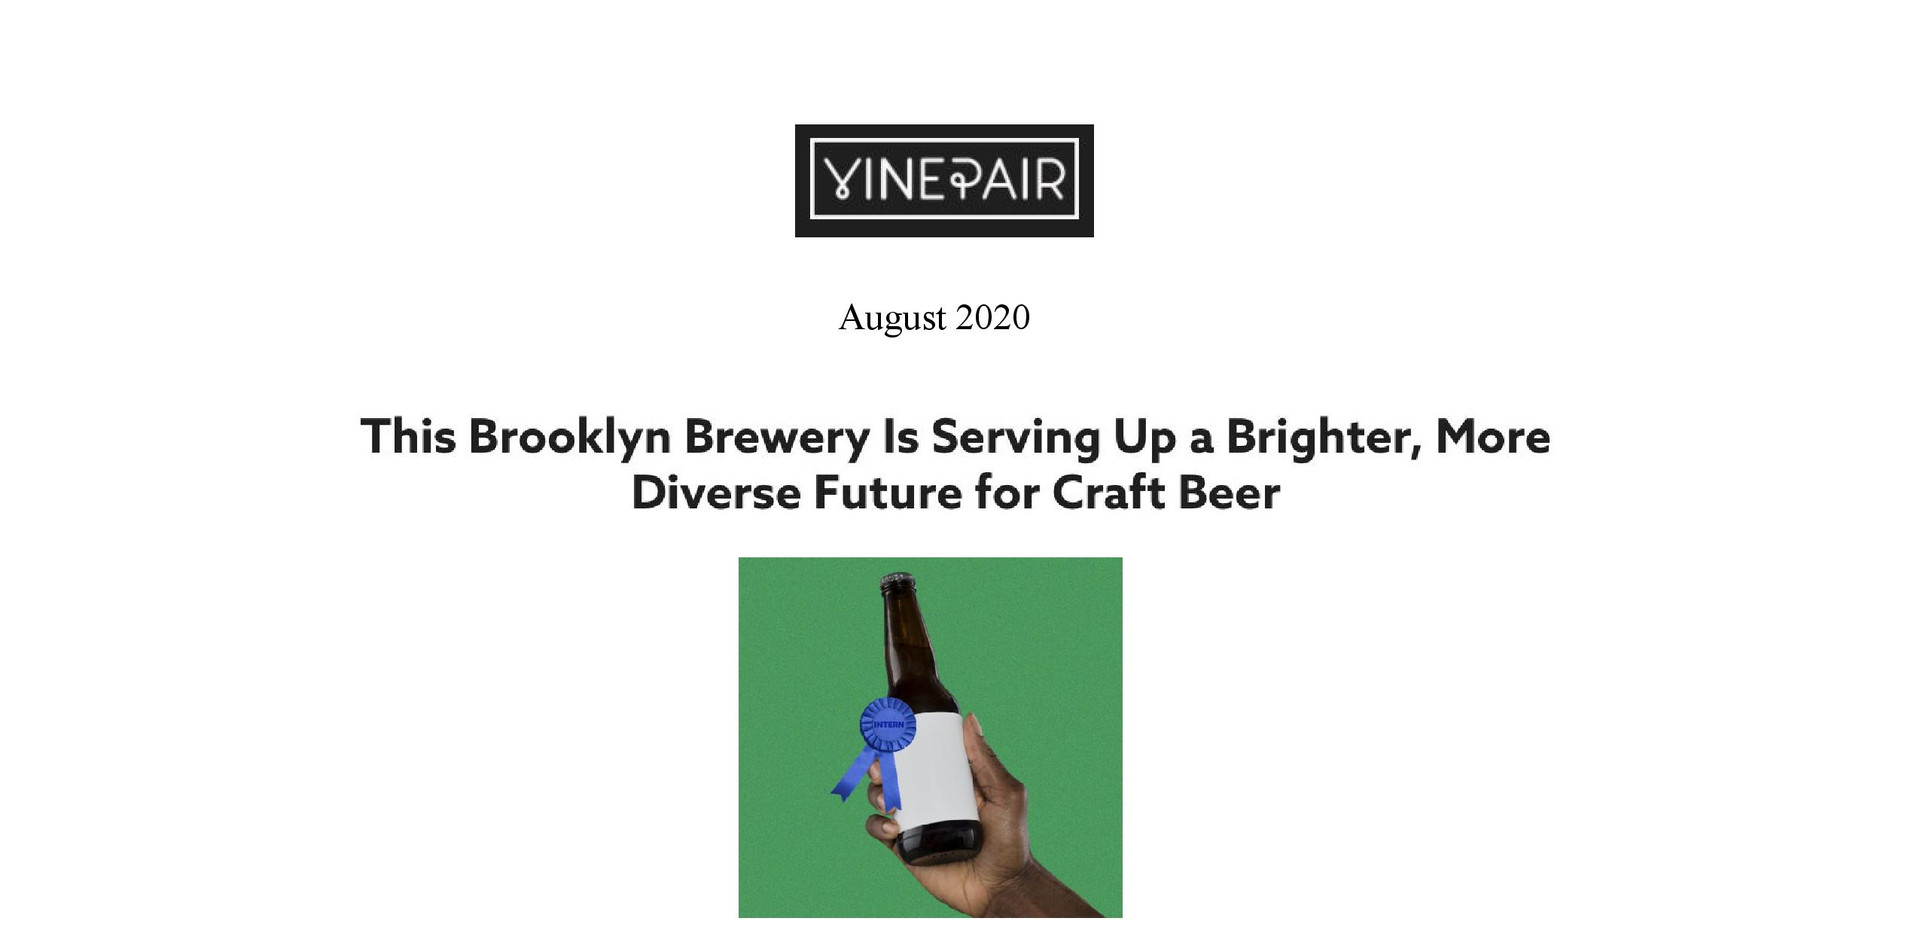 VinePair